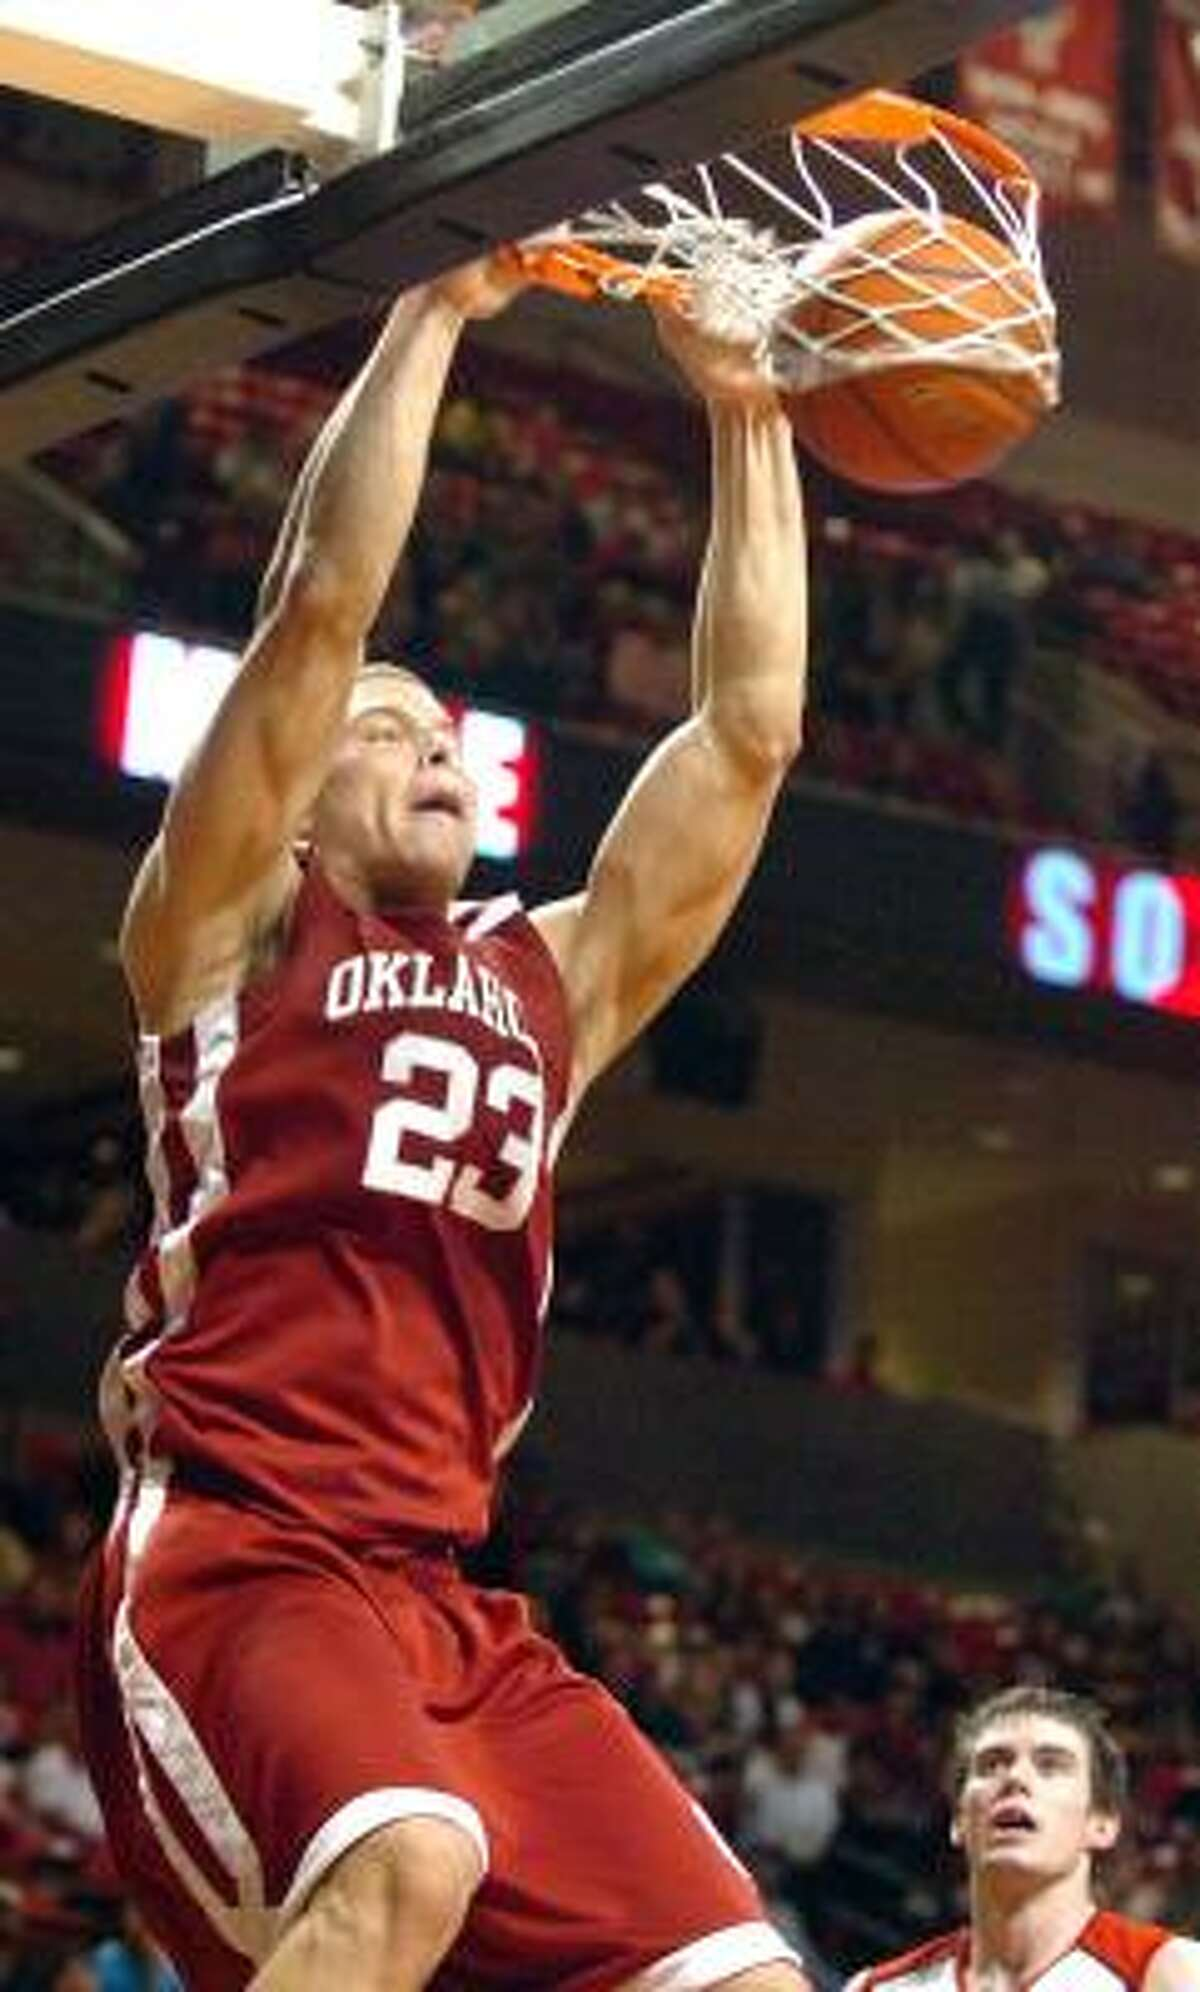 Oklahoma (27-4): The Sooners lost three of their last five games to likely cost themselves a shot at a No. 1 seed in the NCAA Tournament. Forward Blake Griffin (photo), the Big 12's player of the year, missed two of the losses while recovering from a concussion. Griffin led the Big 12 in scoring (22.1) and rebounding (14.2). Guard Willie Warren was named freshman of the year after averaging 14.7 points and hitting 56 3-pointers.